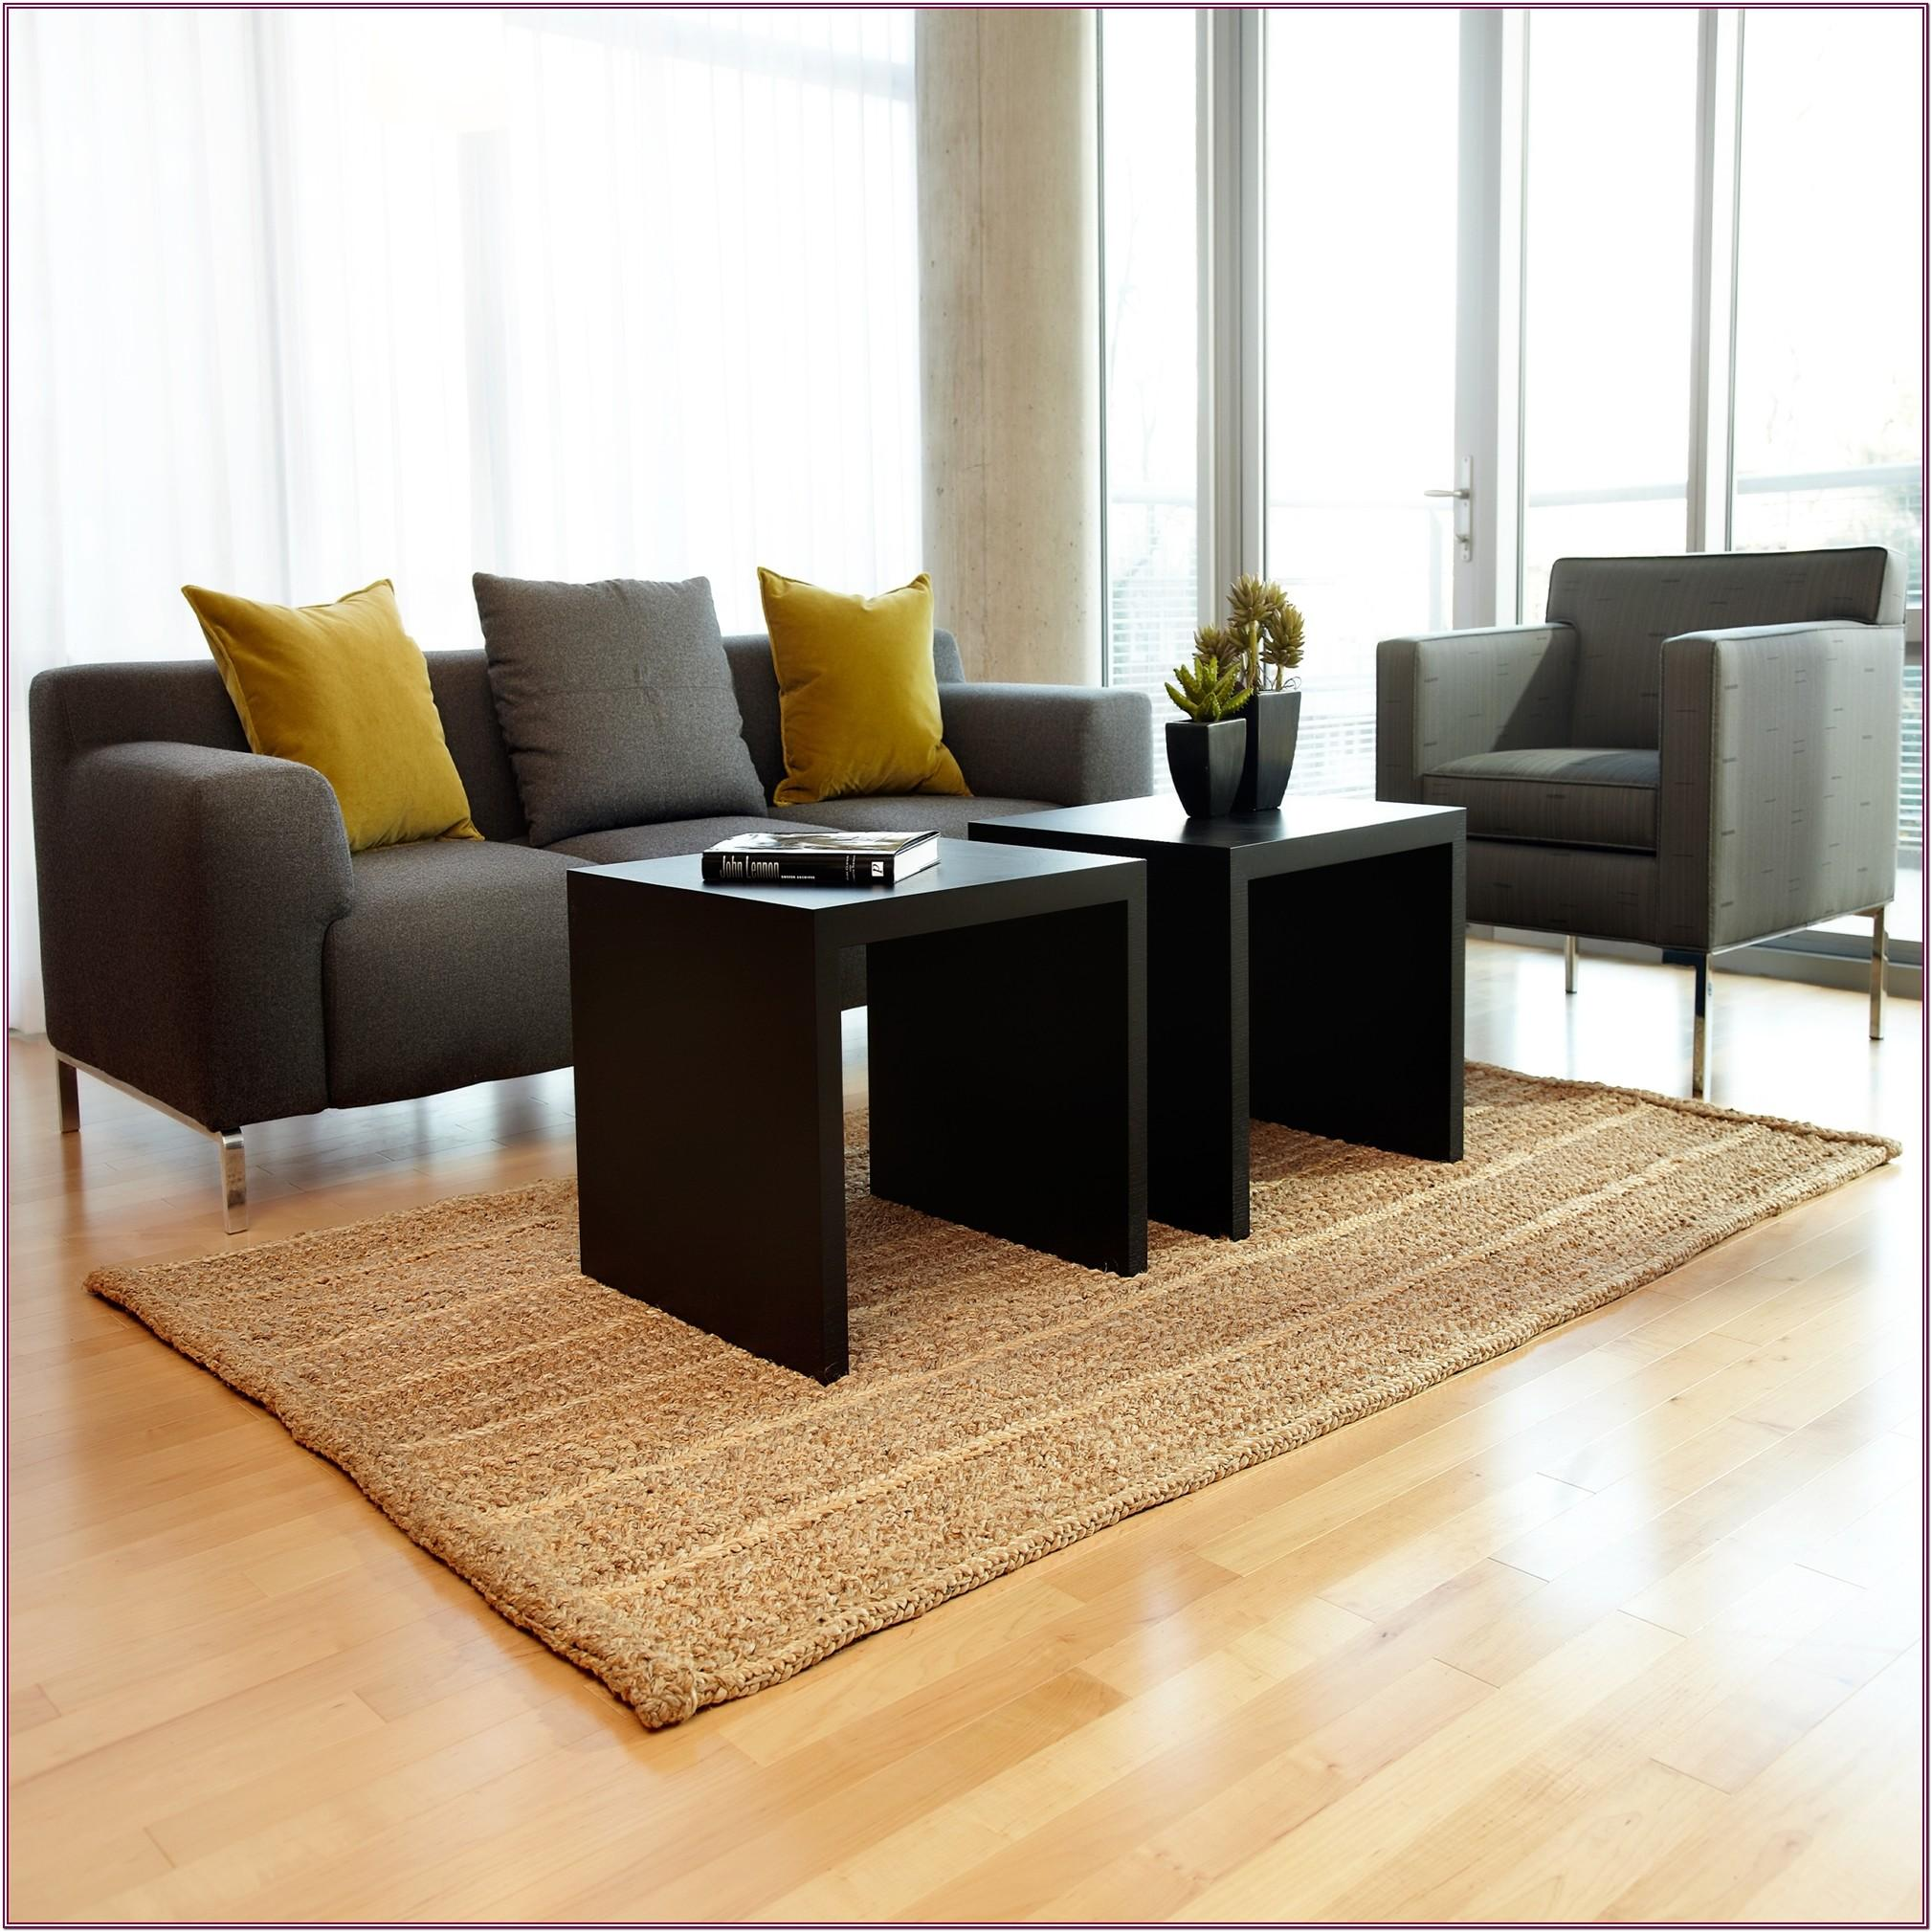 Jute Rug Living Room Grey Couch